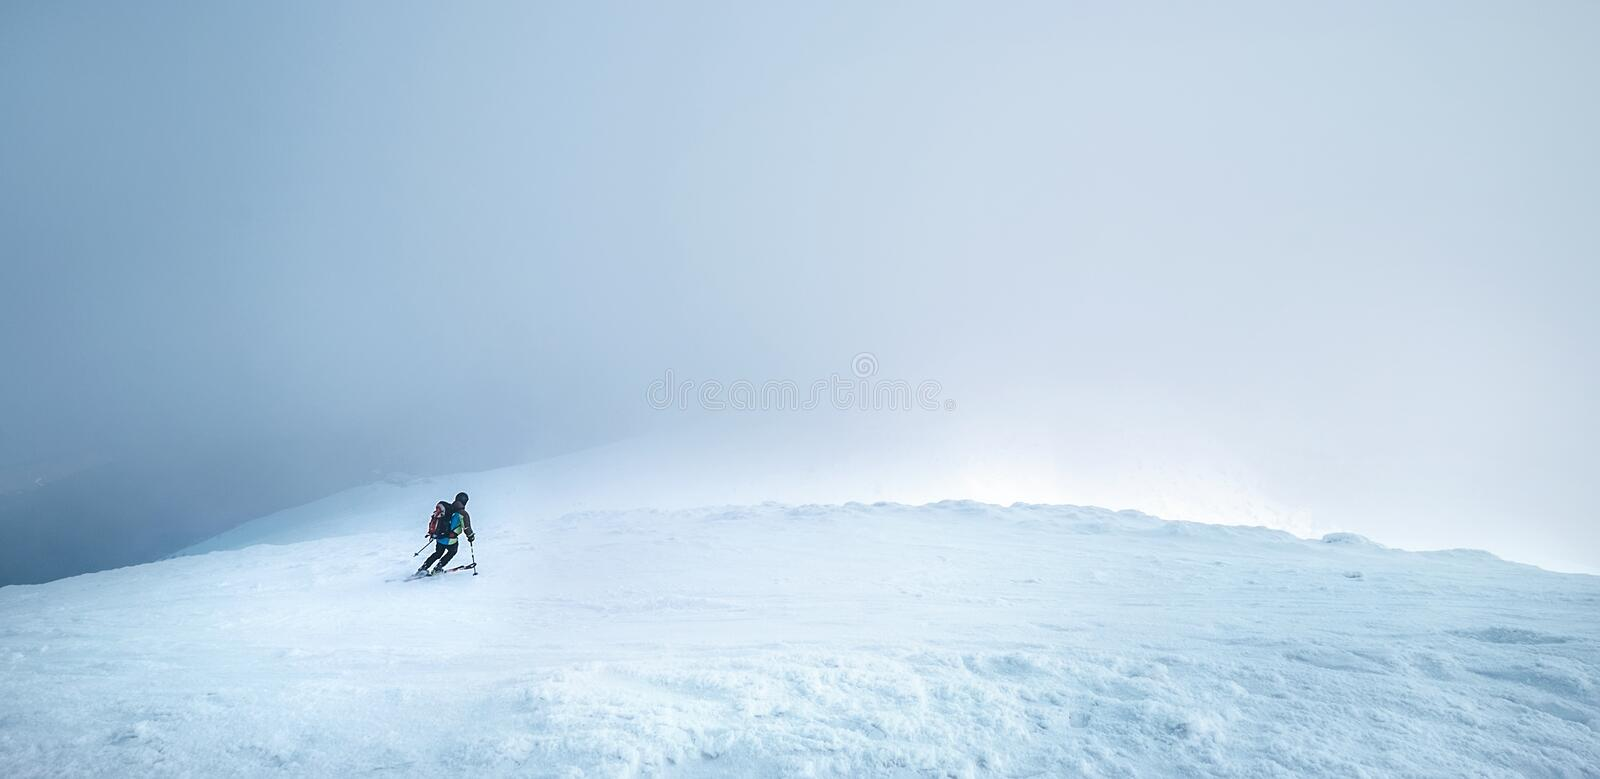 Fast going skier ride down the mountain hill into the storm clouds. Active winter sport concept image royalty free stock photography